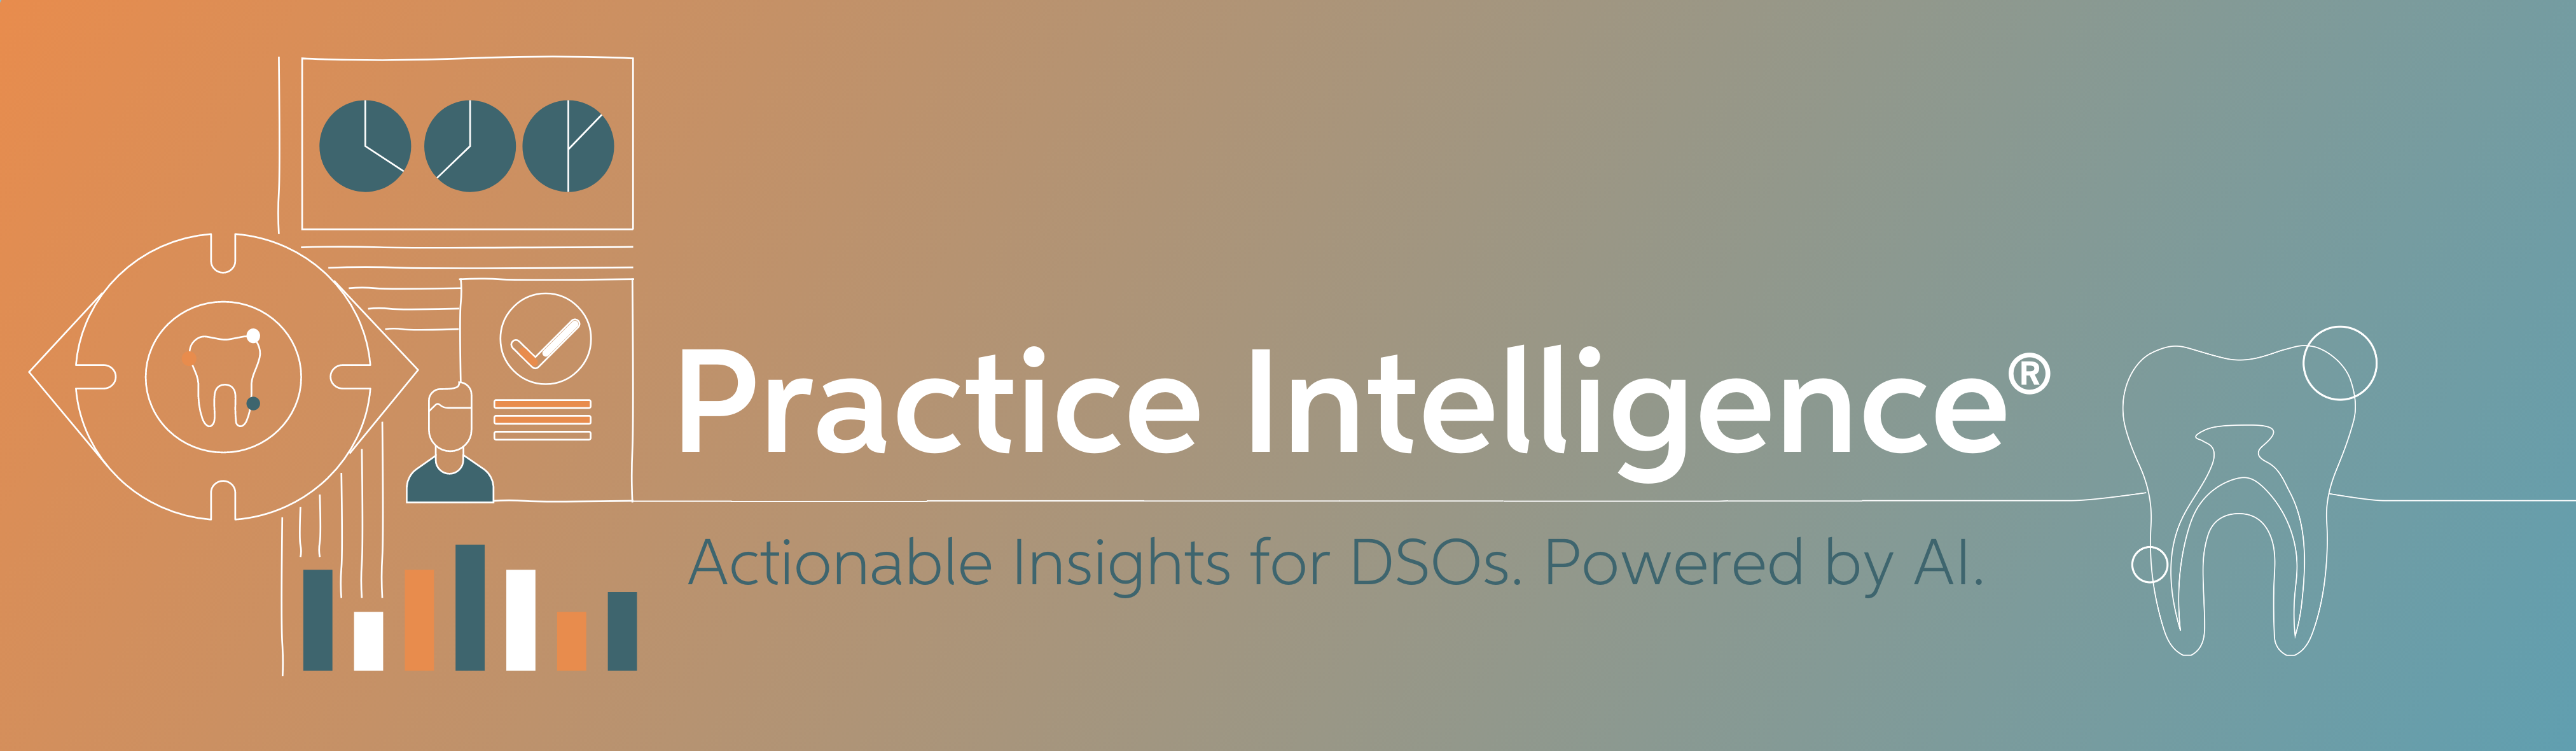 Practice Intelligence®-ActionableInsights-DSO-1